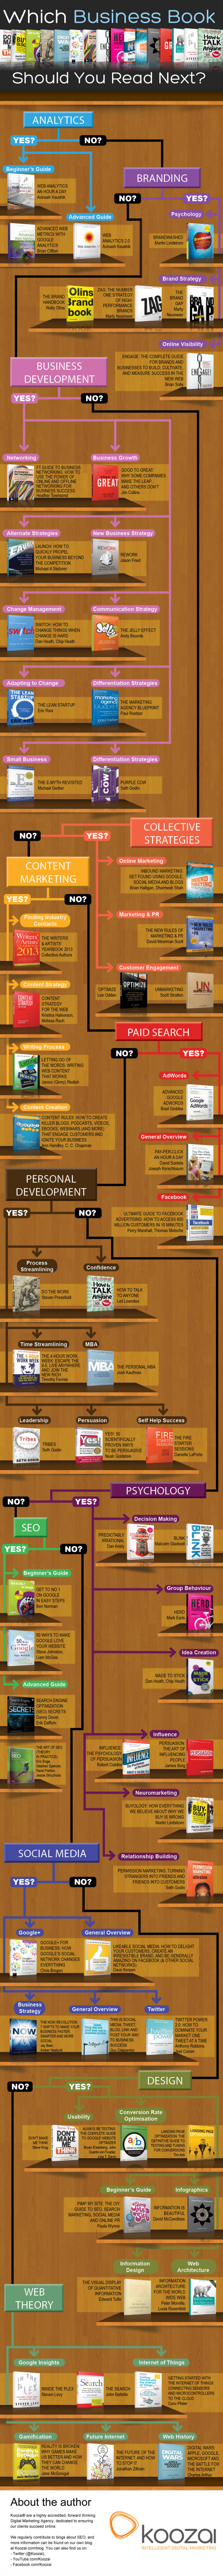 Which Business Book Should You Read Next?